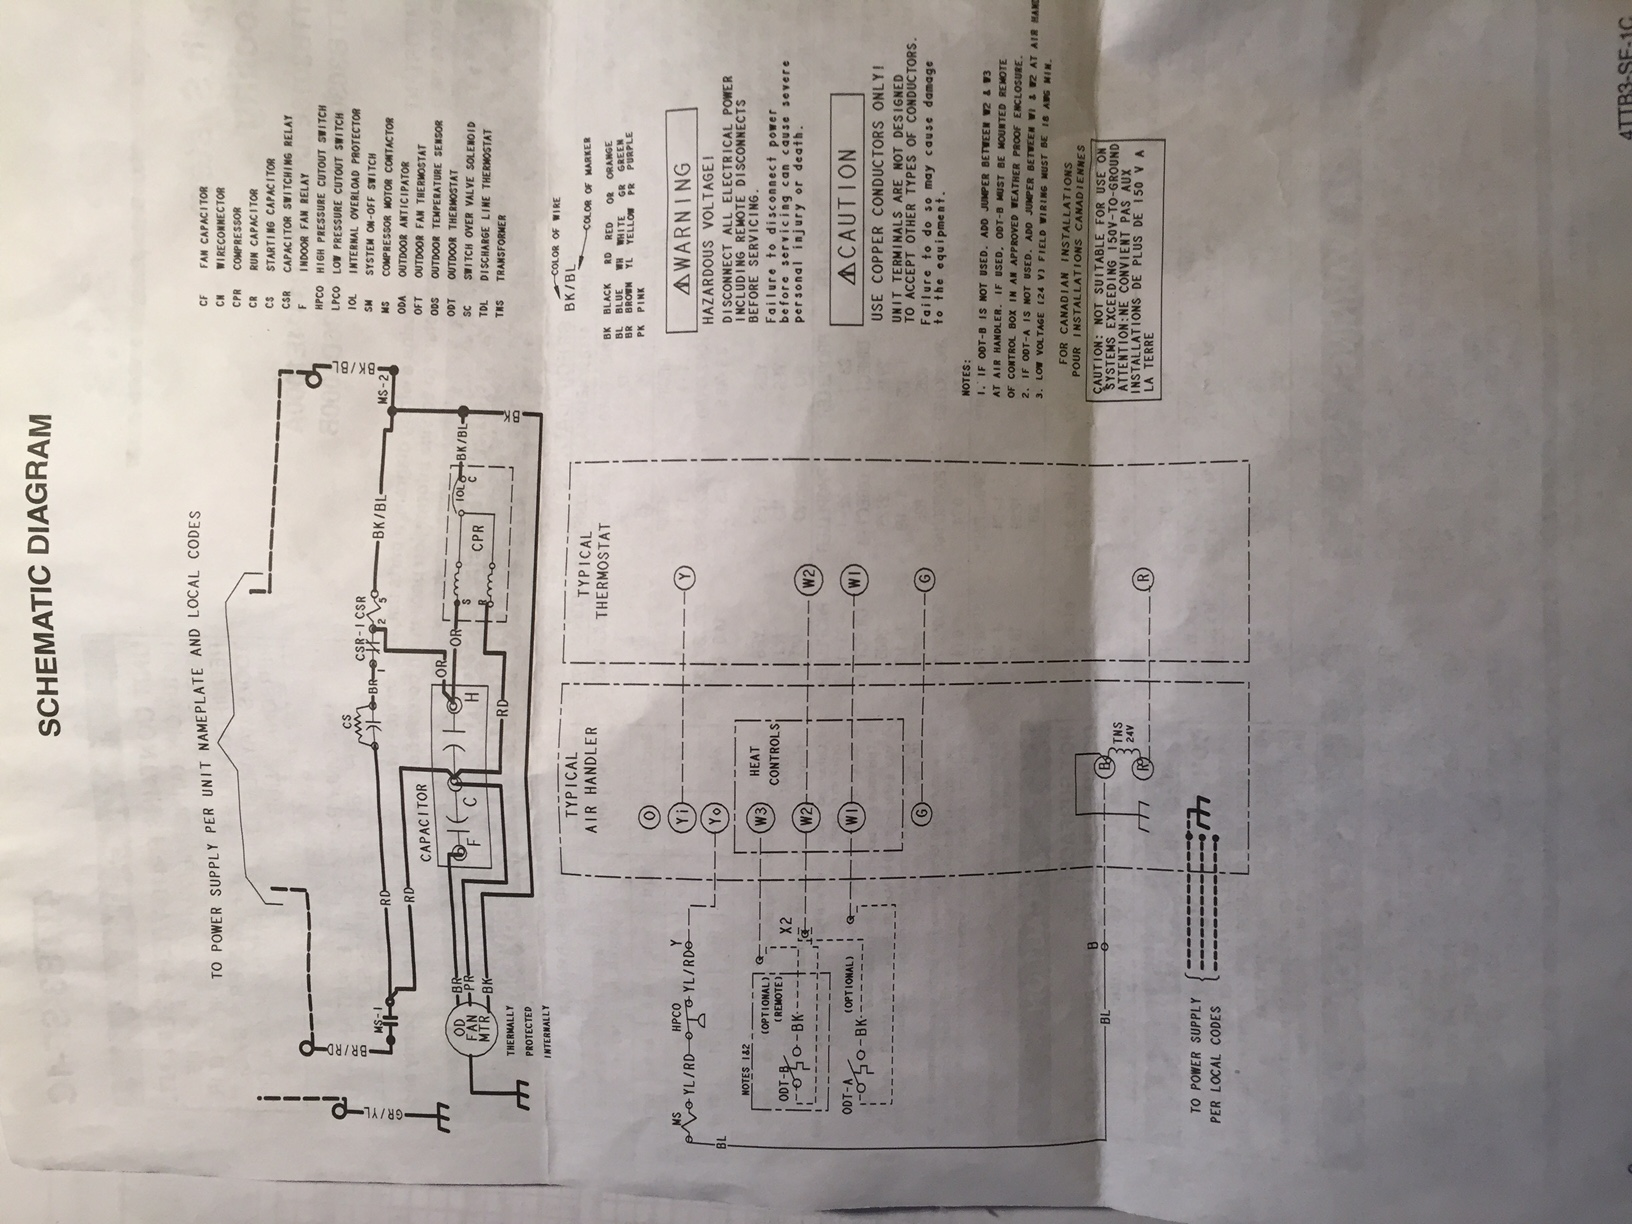 Module Wiring Diagram On White Rodgers Ignition Module Wiring Diagram